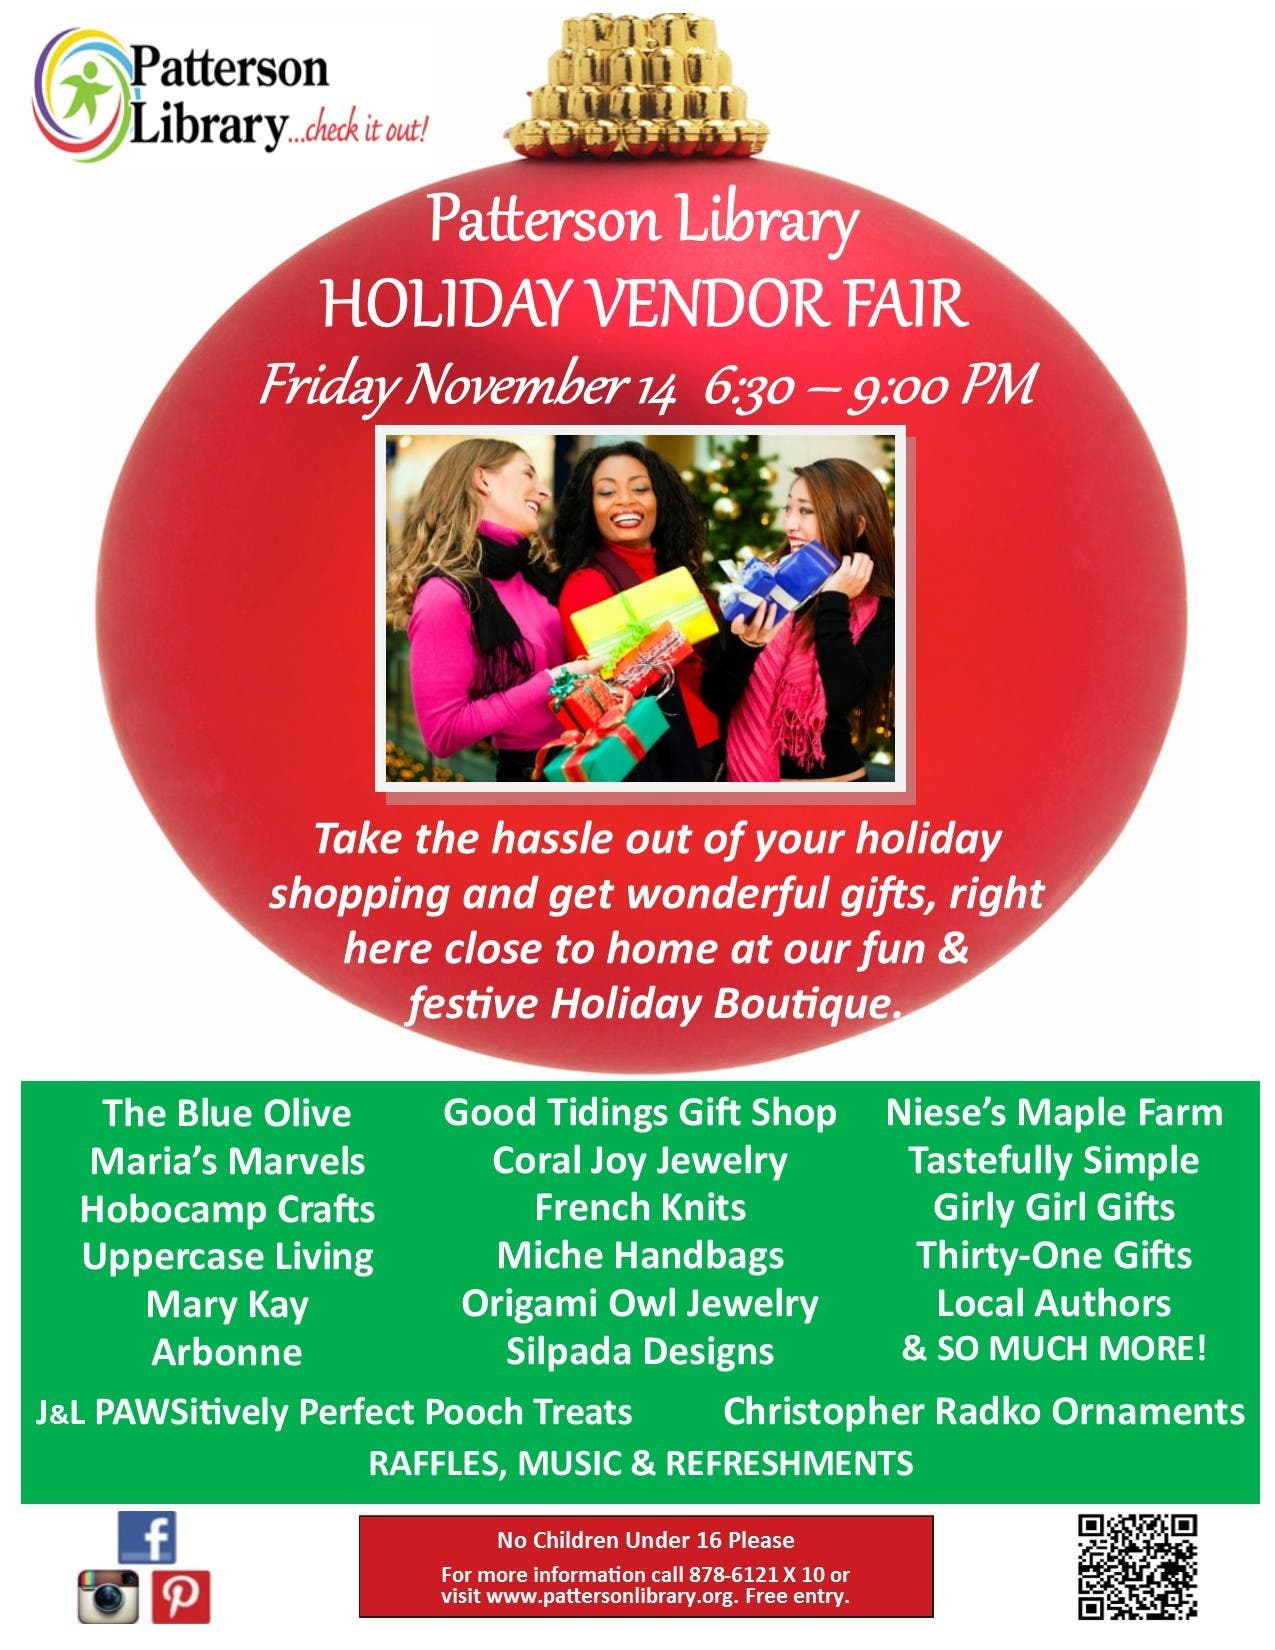 Patterson Library Holiday Vendor Fair   Southeast, NY Patch